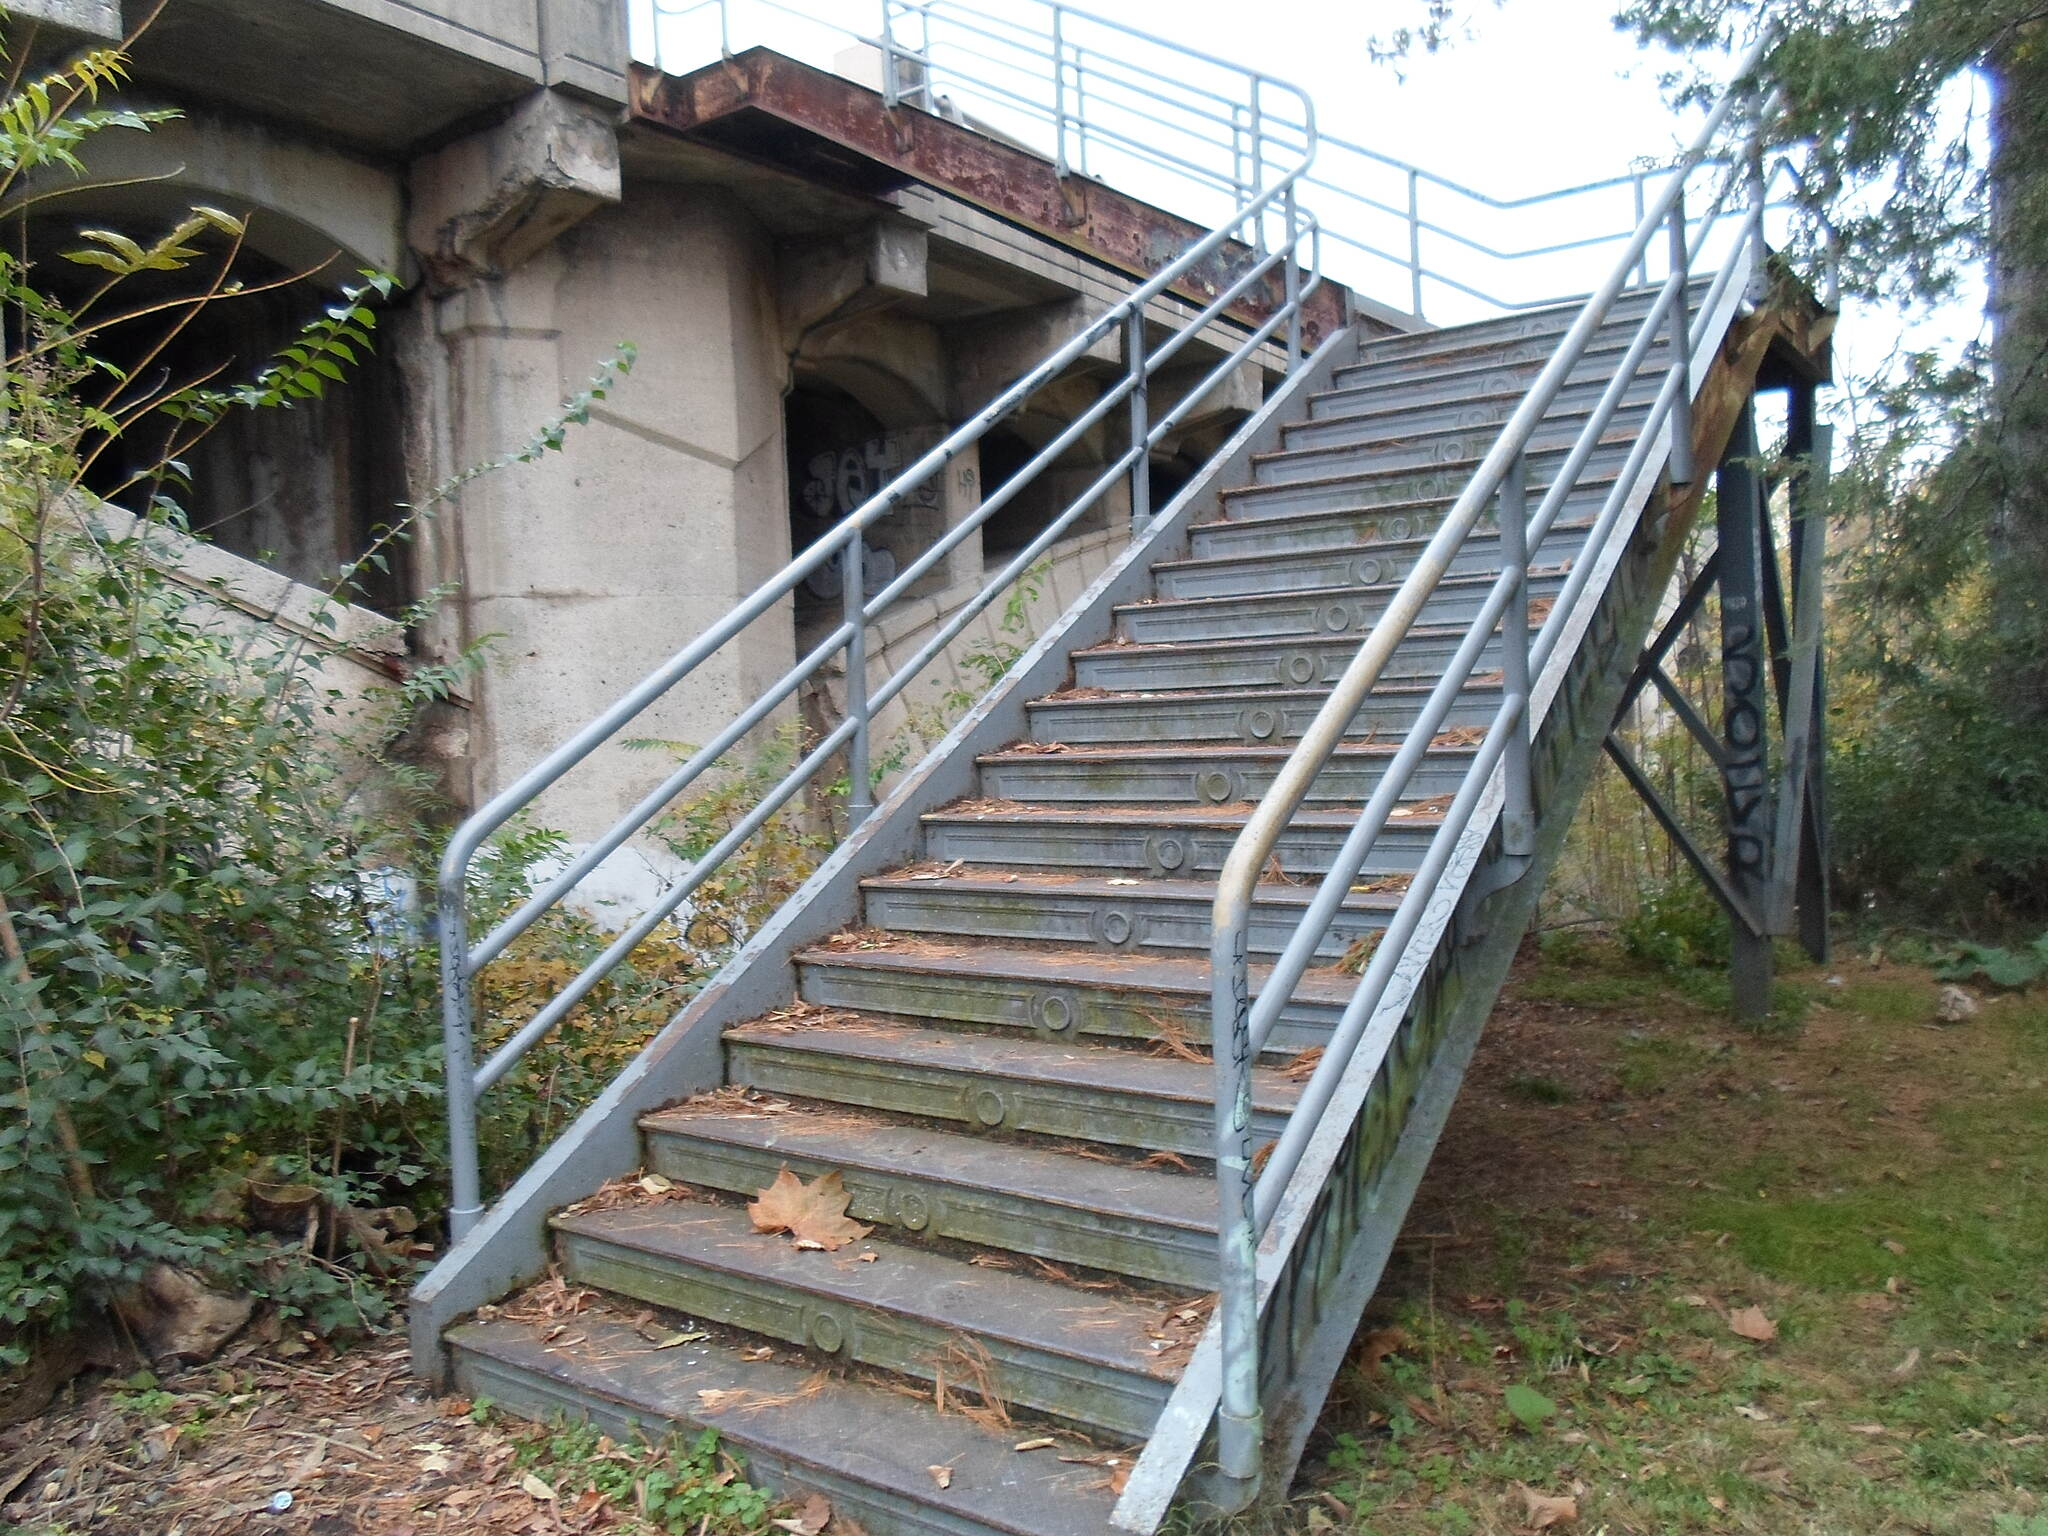 Neversink Connector Trail Neversink Connector Trail Stairway connecting the trail to Lancaster Ave., which crosses on the bridge above. Taken October 2012.